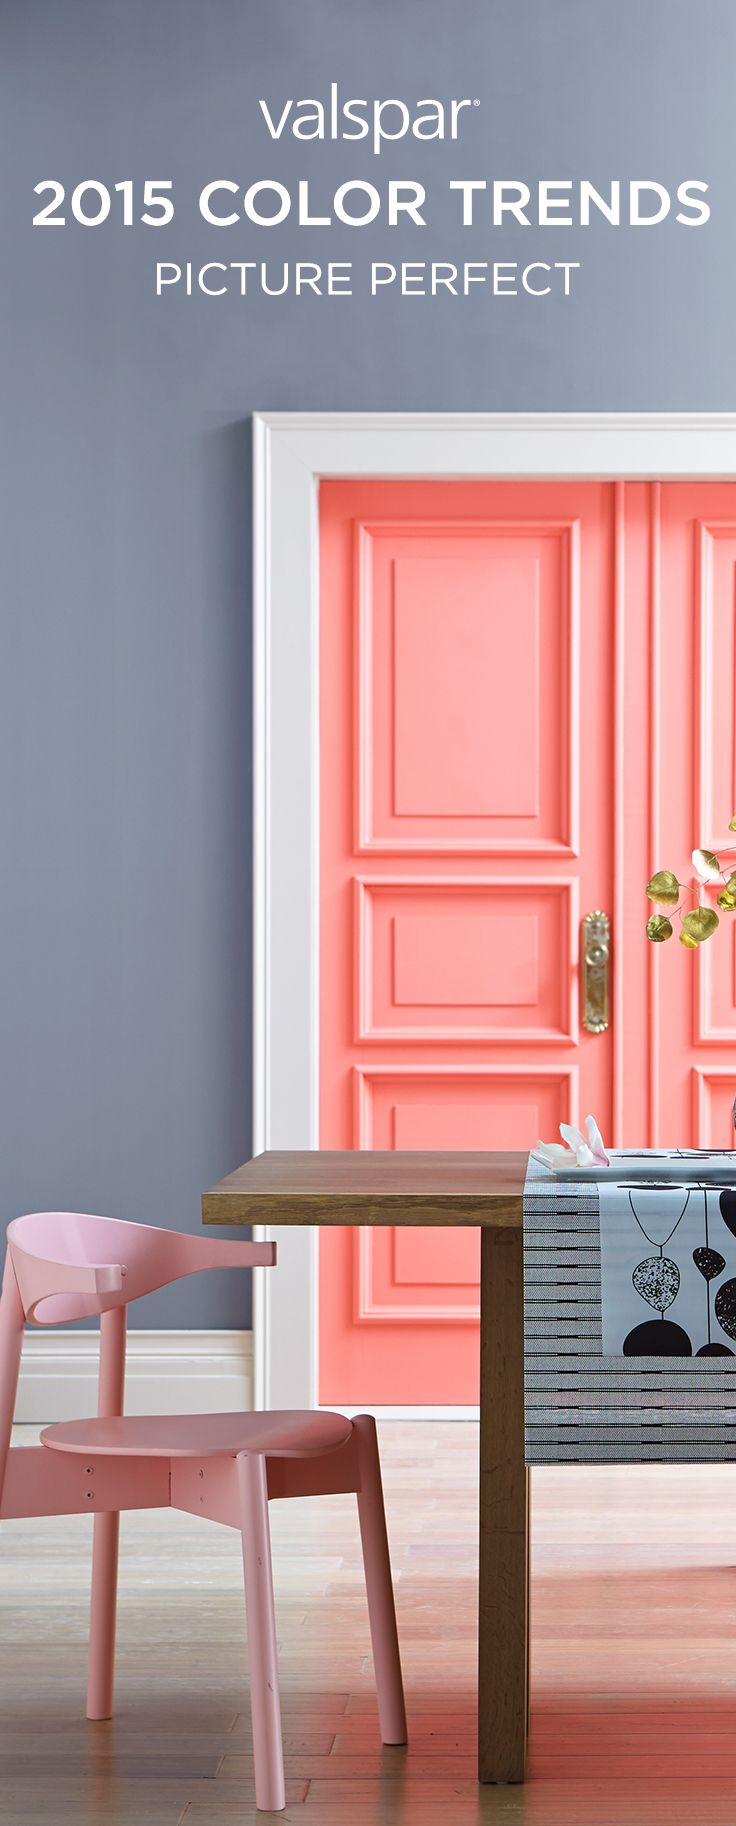 Fill your home with filtered hues and soft shades of coral. Bring in subtle, shimmering metallics as accent pieces that can add a flash of excitement and finish off the room with dreamy shades of blue.  See all the Valspar 2015 Color Trends here: http://www.valsparpaint.com/en/explore-colors/find-ideas/trends/2015/index.html